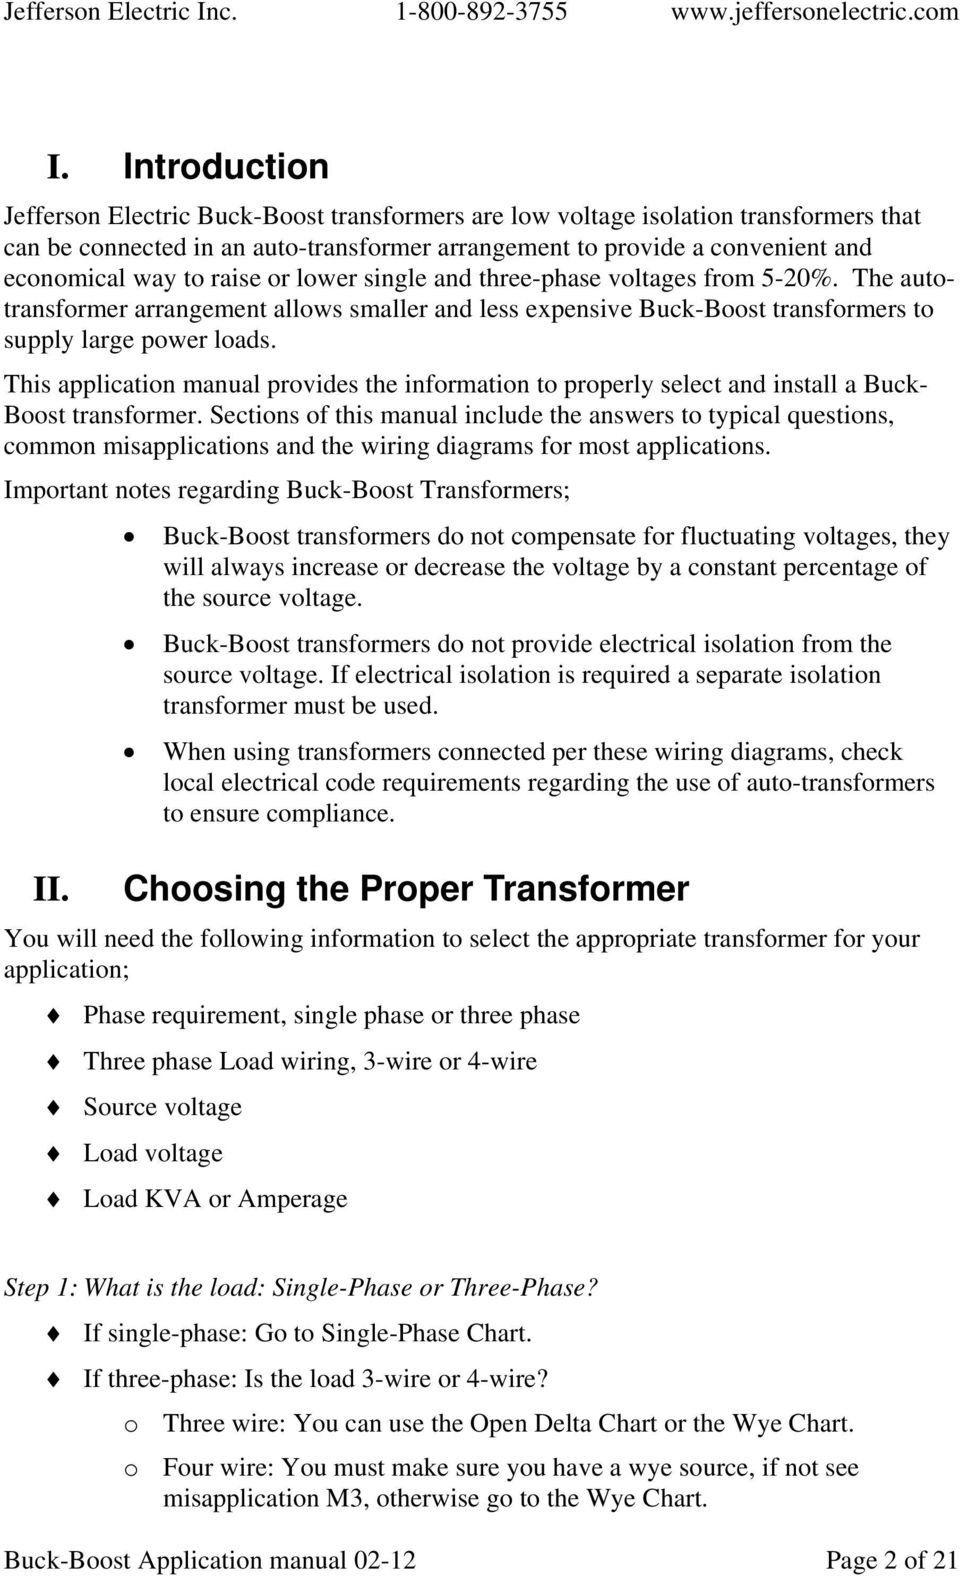 Jefferson Electric Inc Buck Boost Transformer Application Manual Pdf 3 Phase Delta Wye Wiring Diagram This Provides The Information To Properly Select And Install A